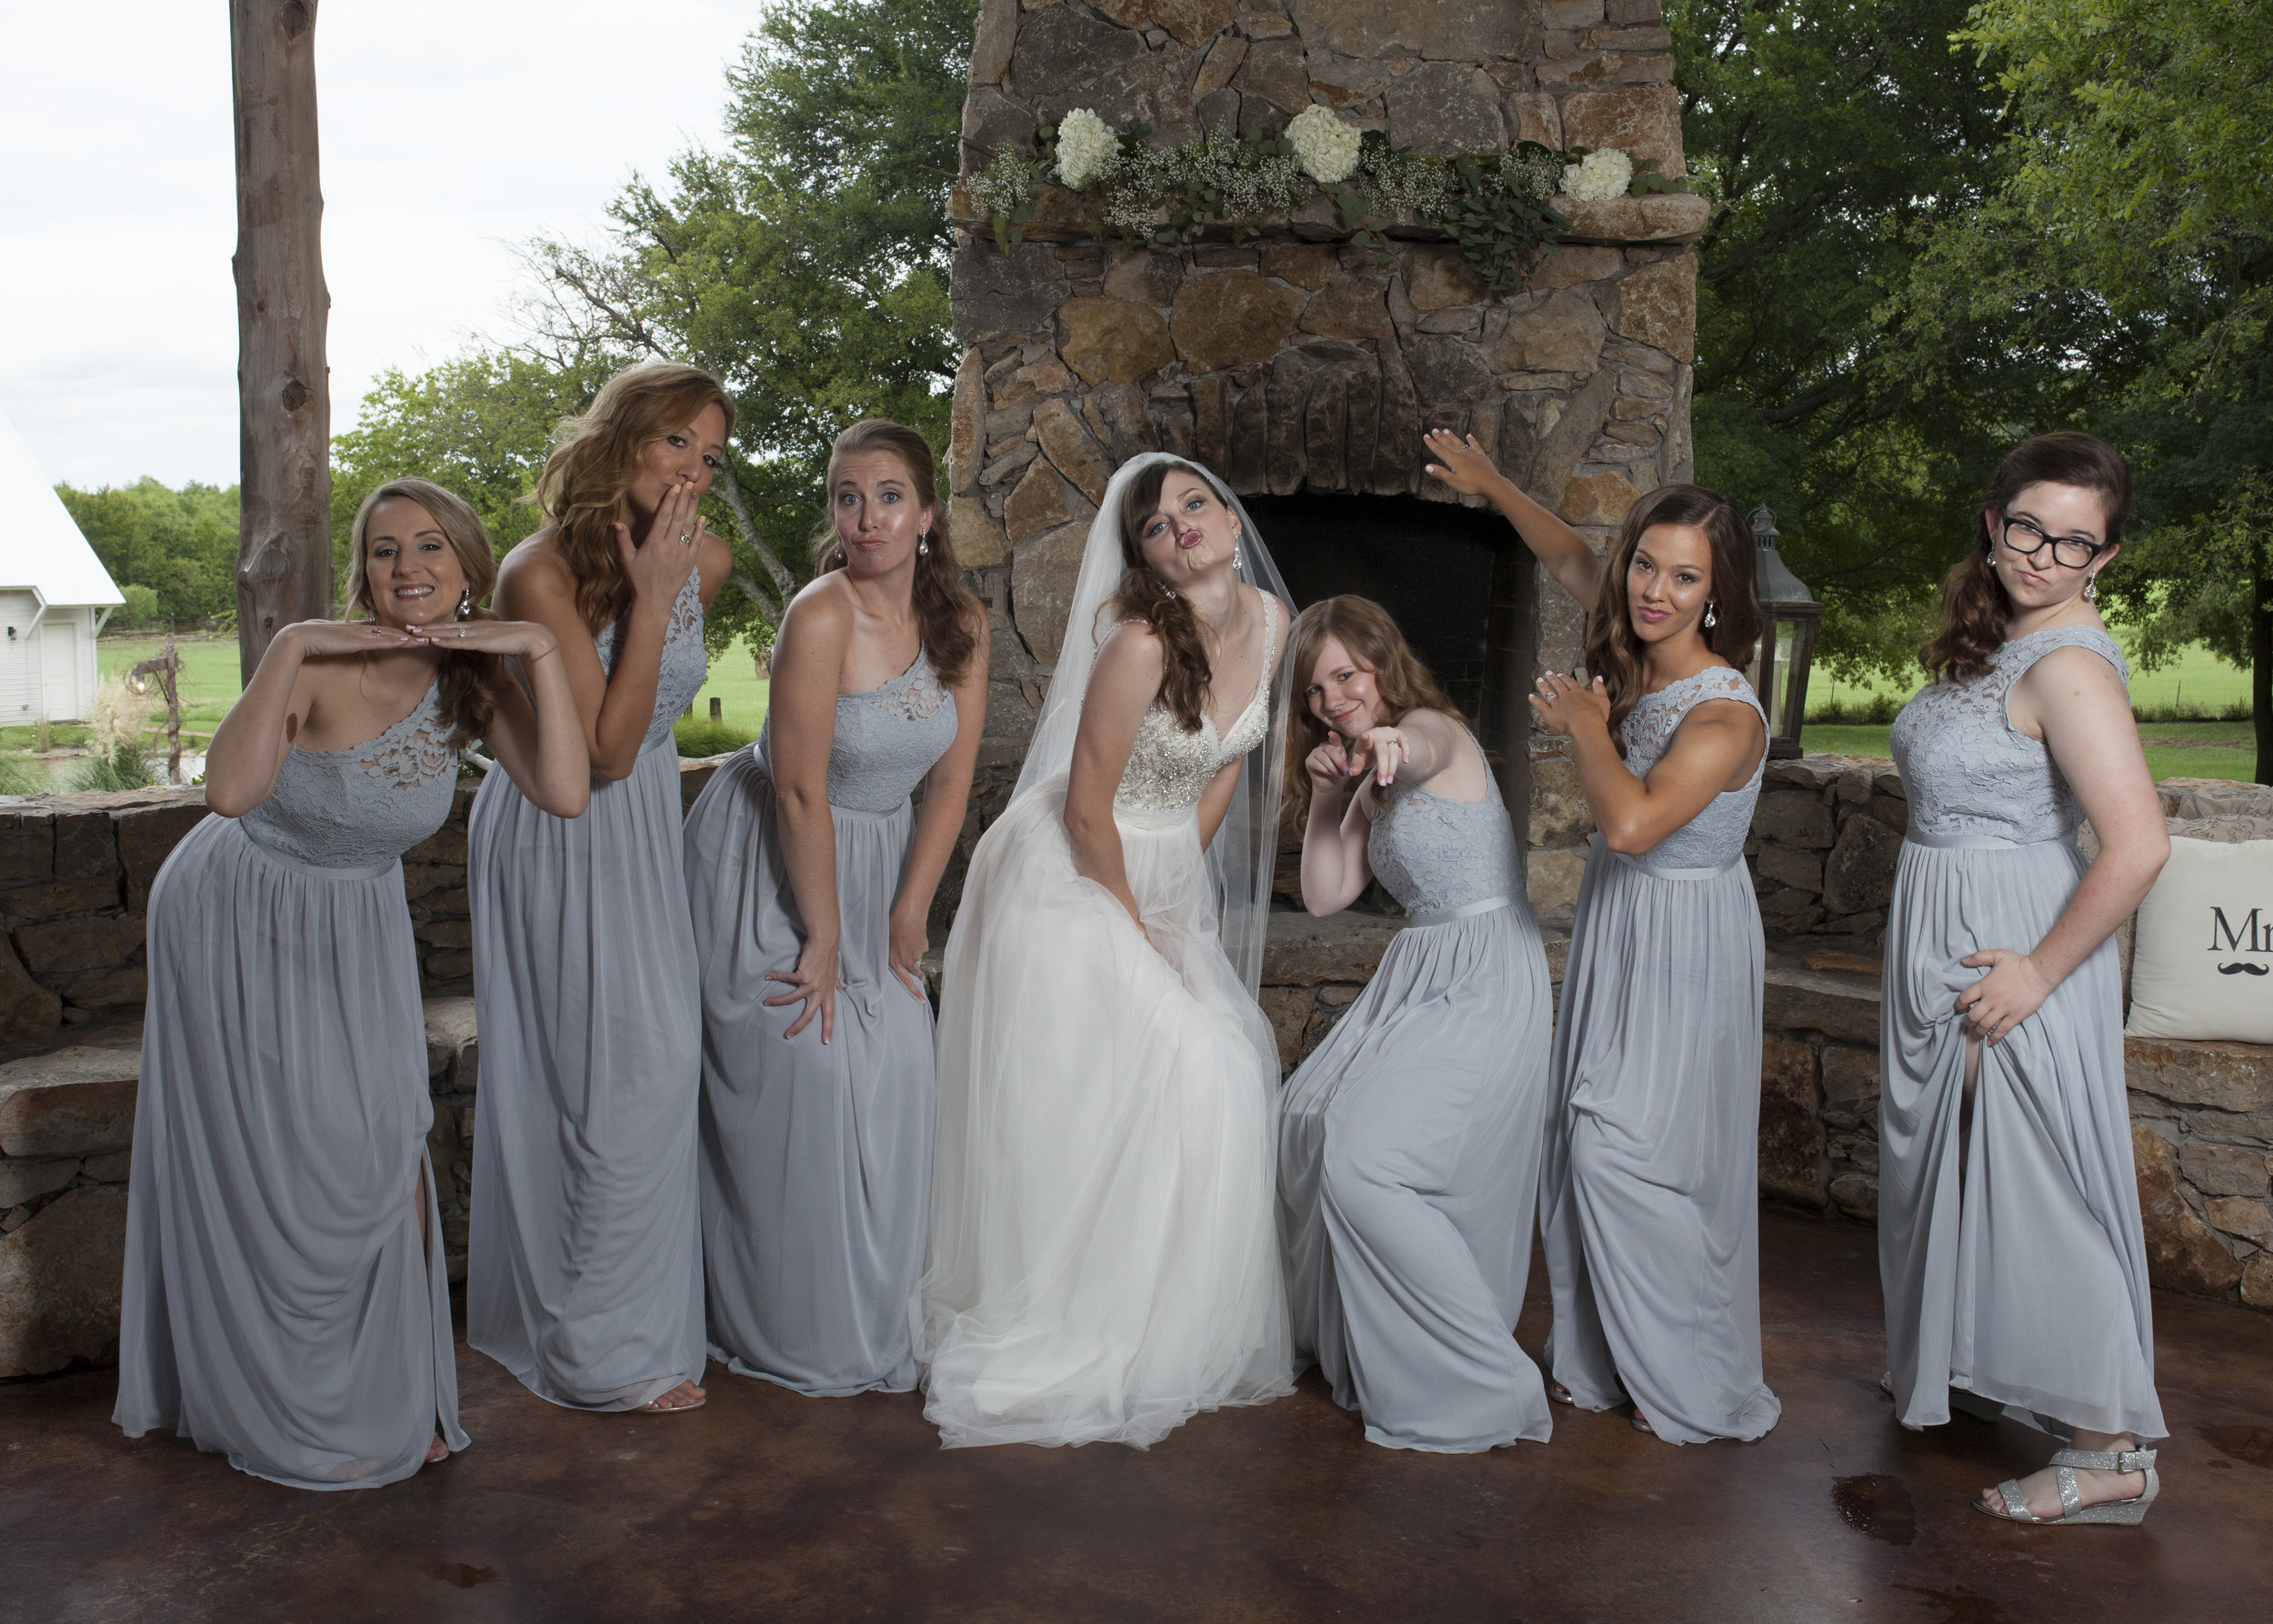 OK, the bridesmaids were goofy as well!